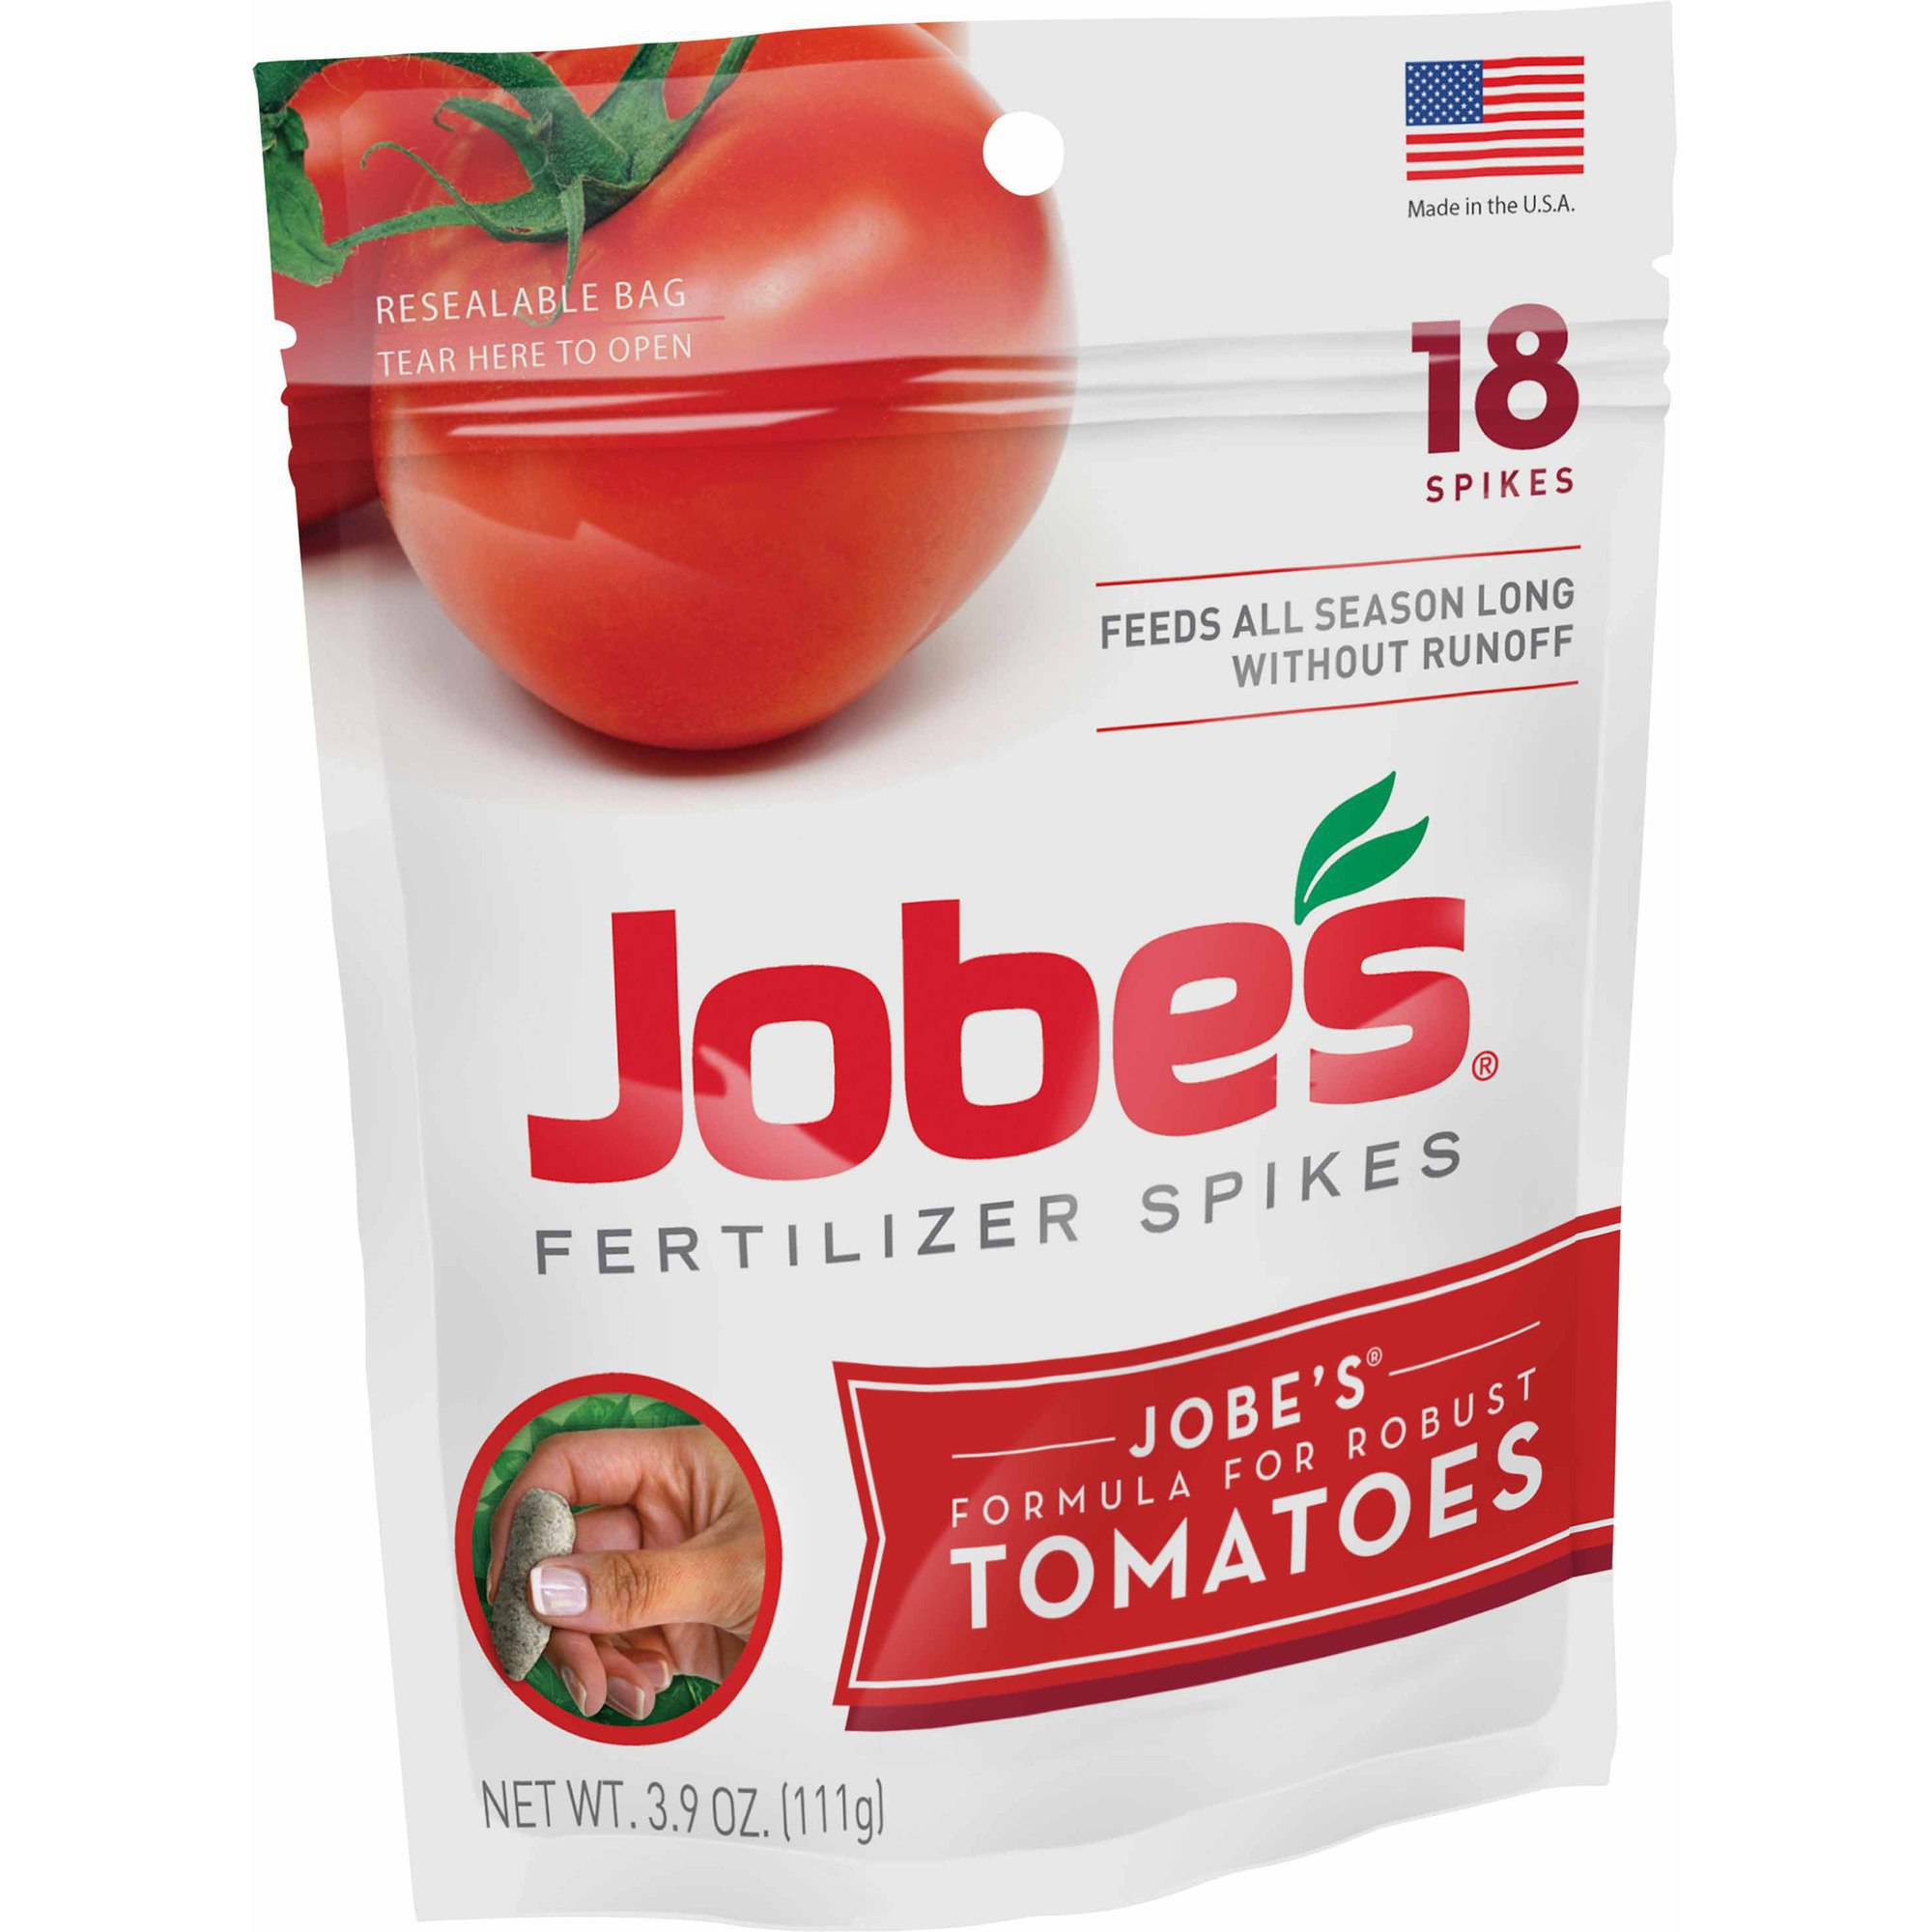 Jobe's Tomato Plant Spikes Plant Food, 18 units